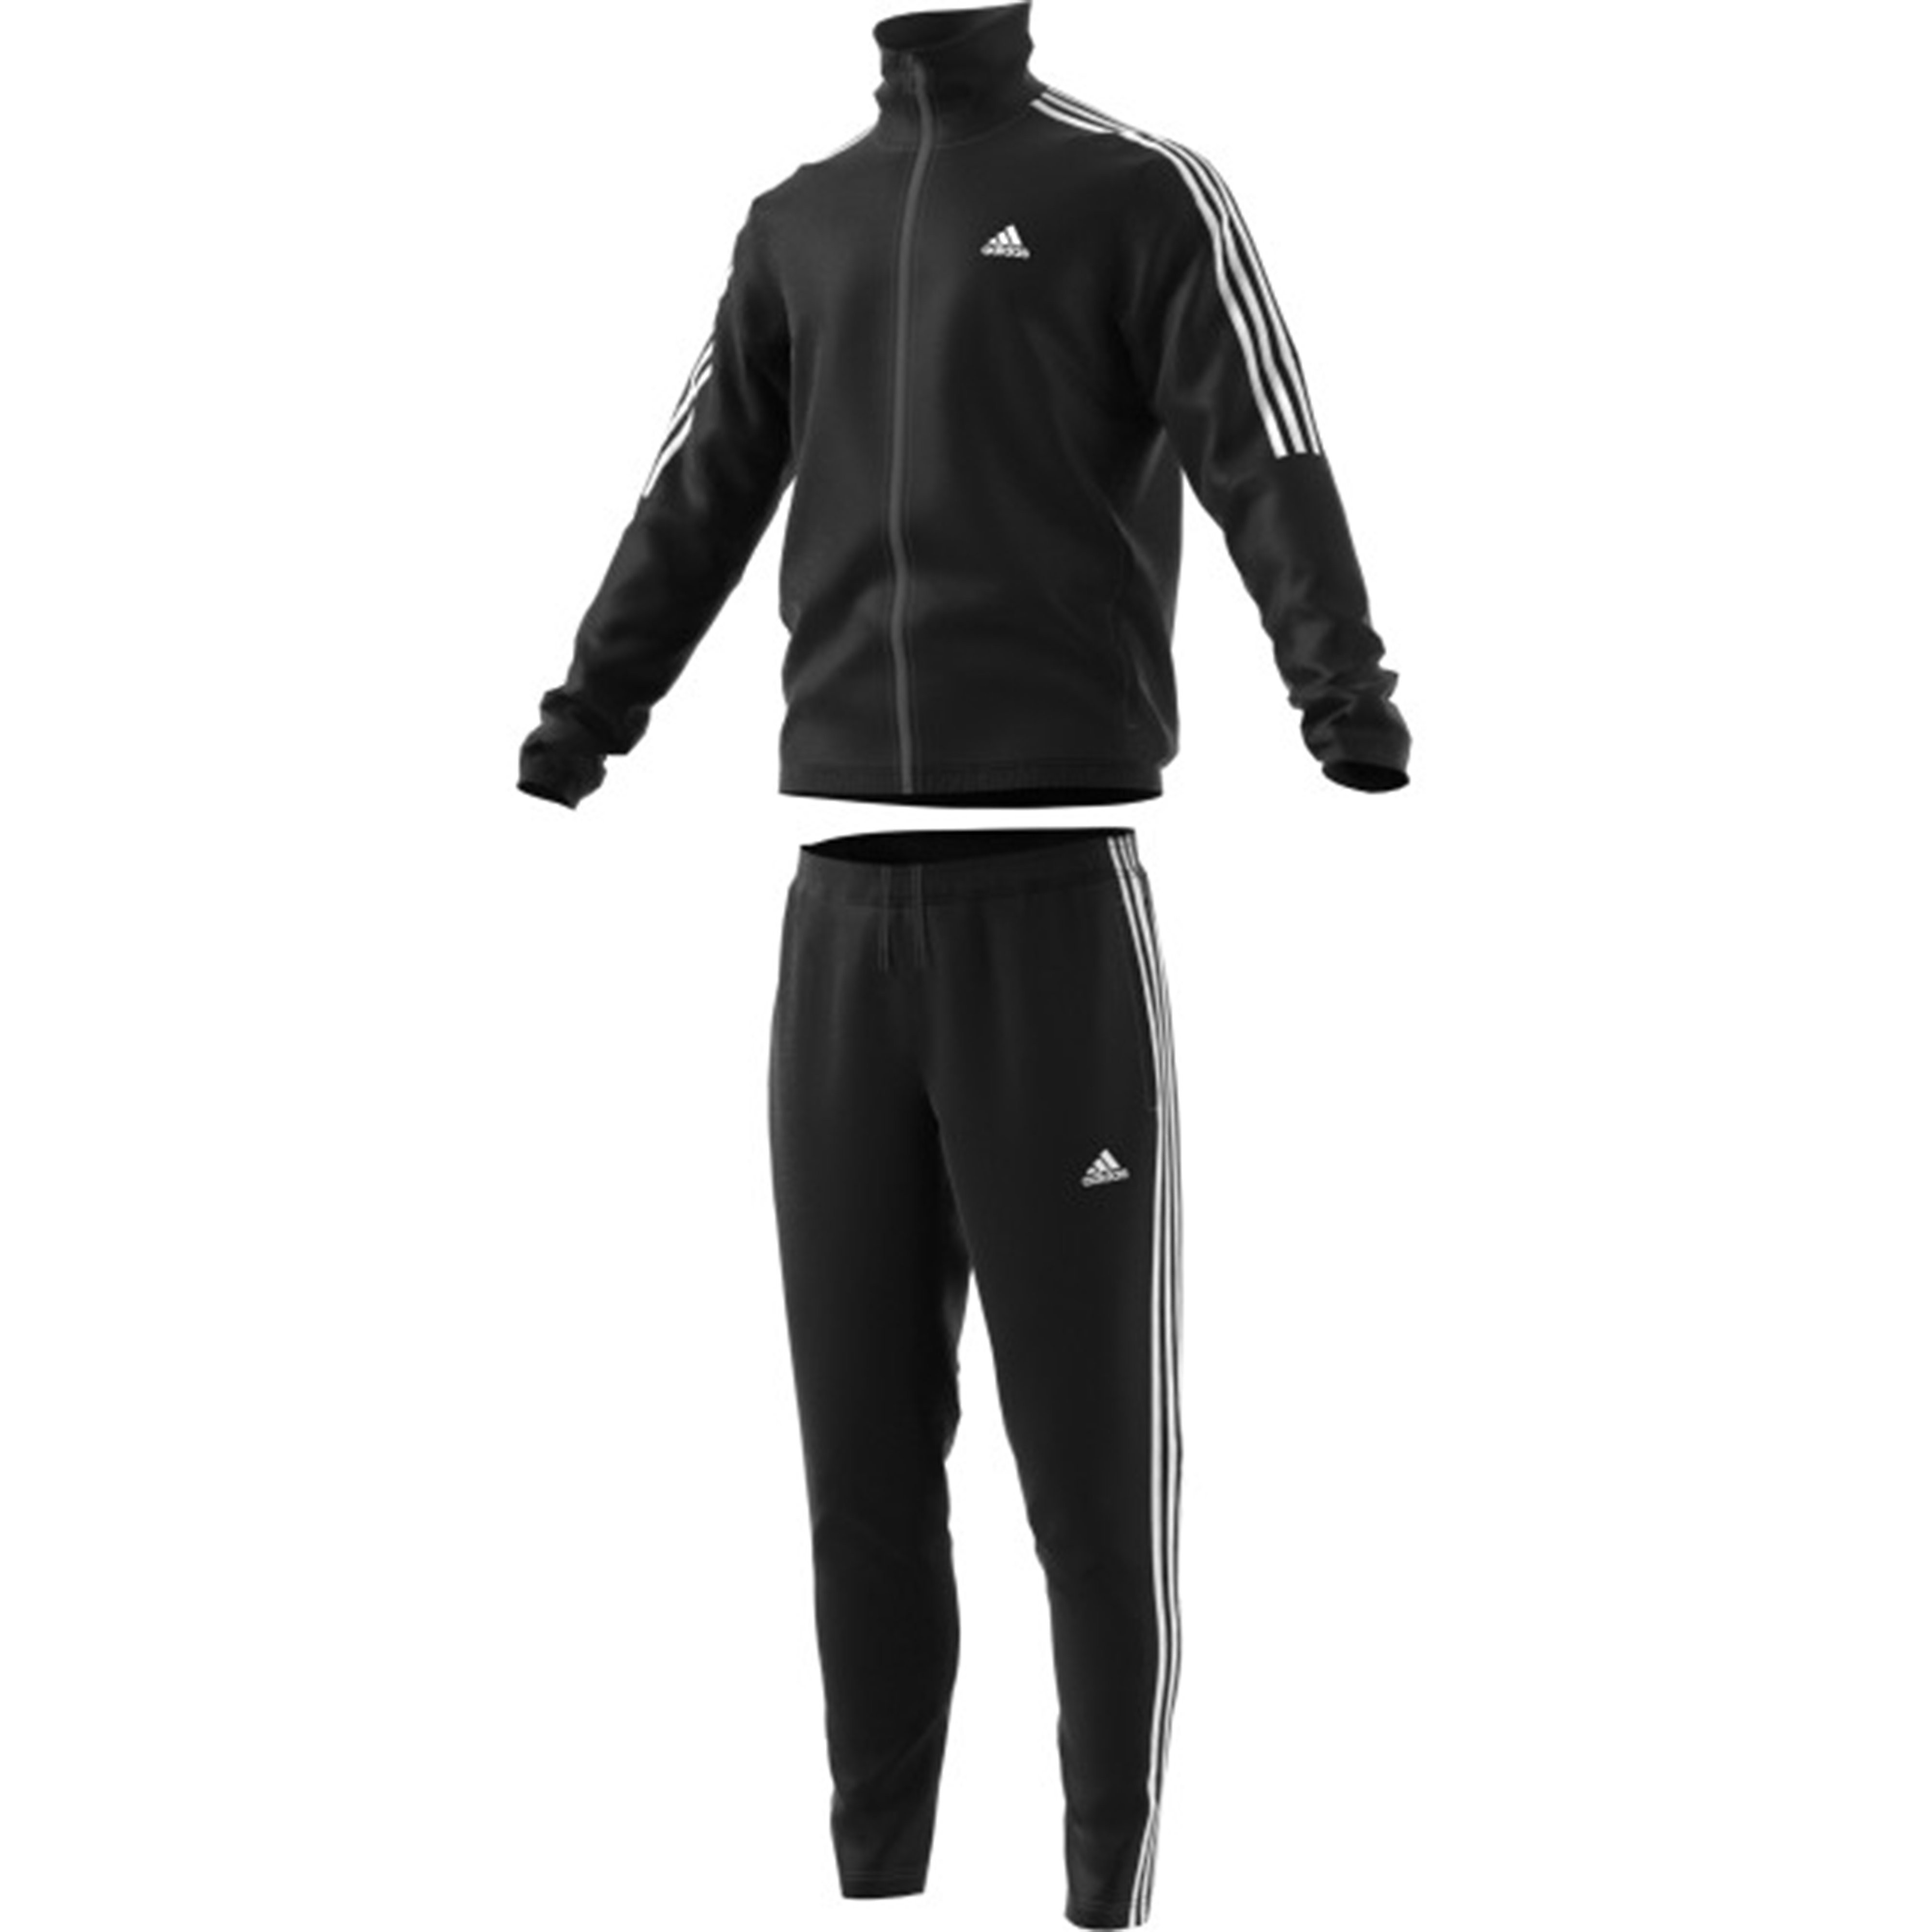 ADIDAS TIRO TRAININGSPAK HEREN